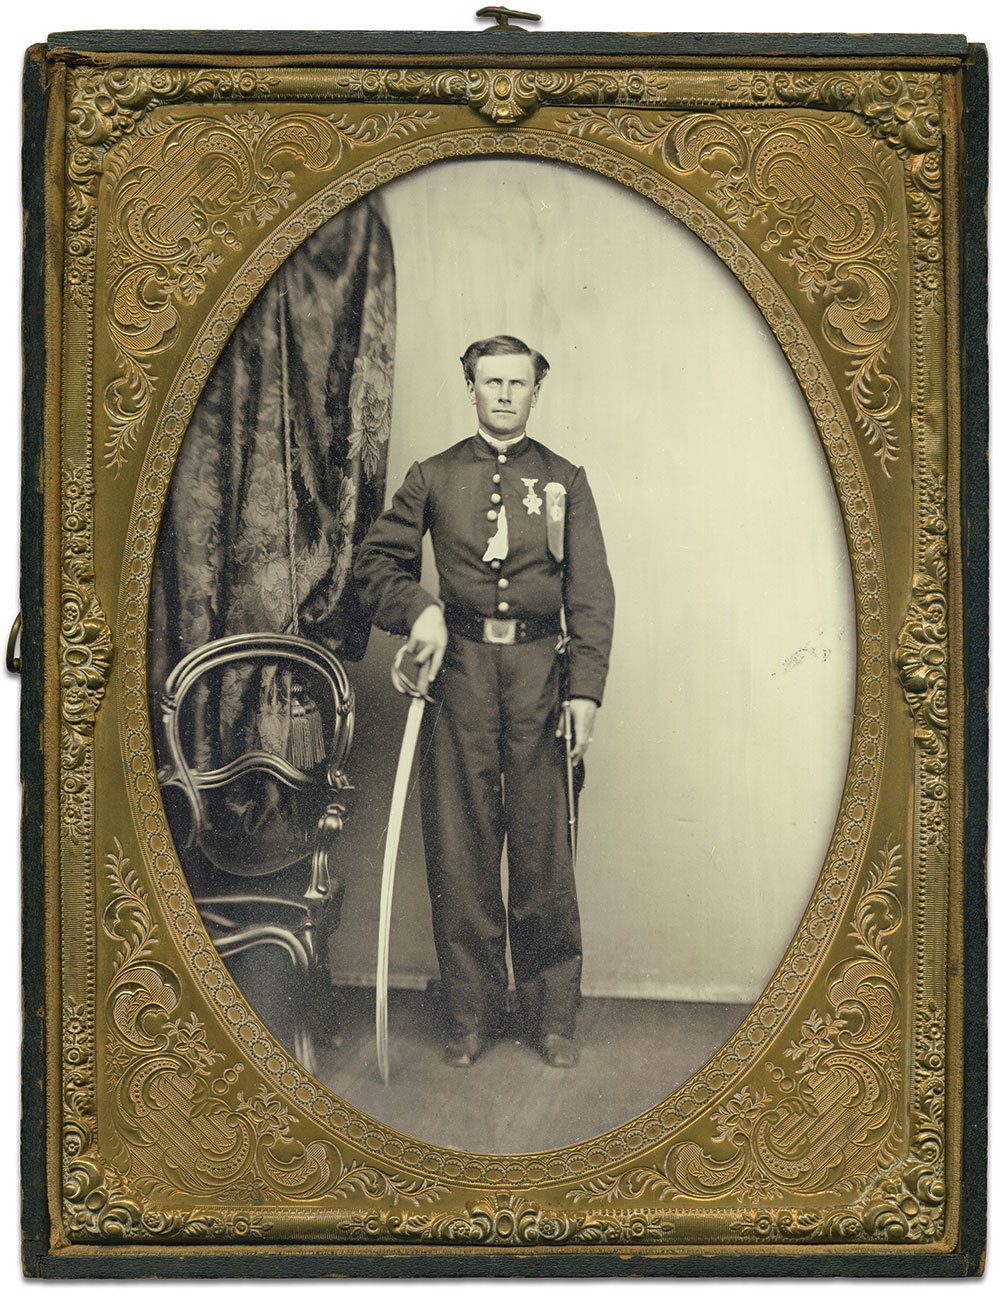 Full-plate ambrotype by an anonymous photographer.